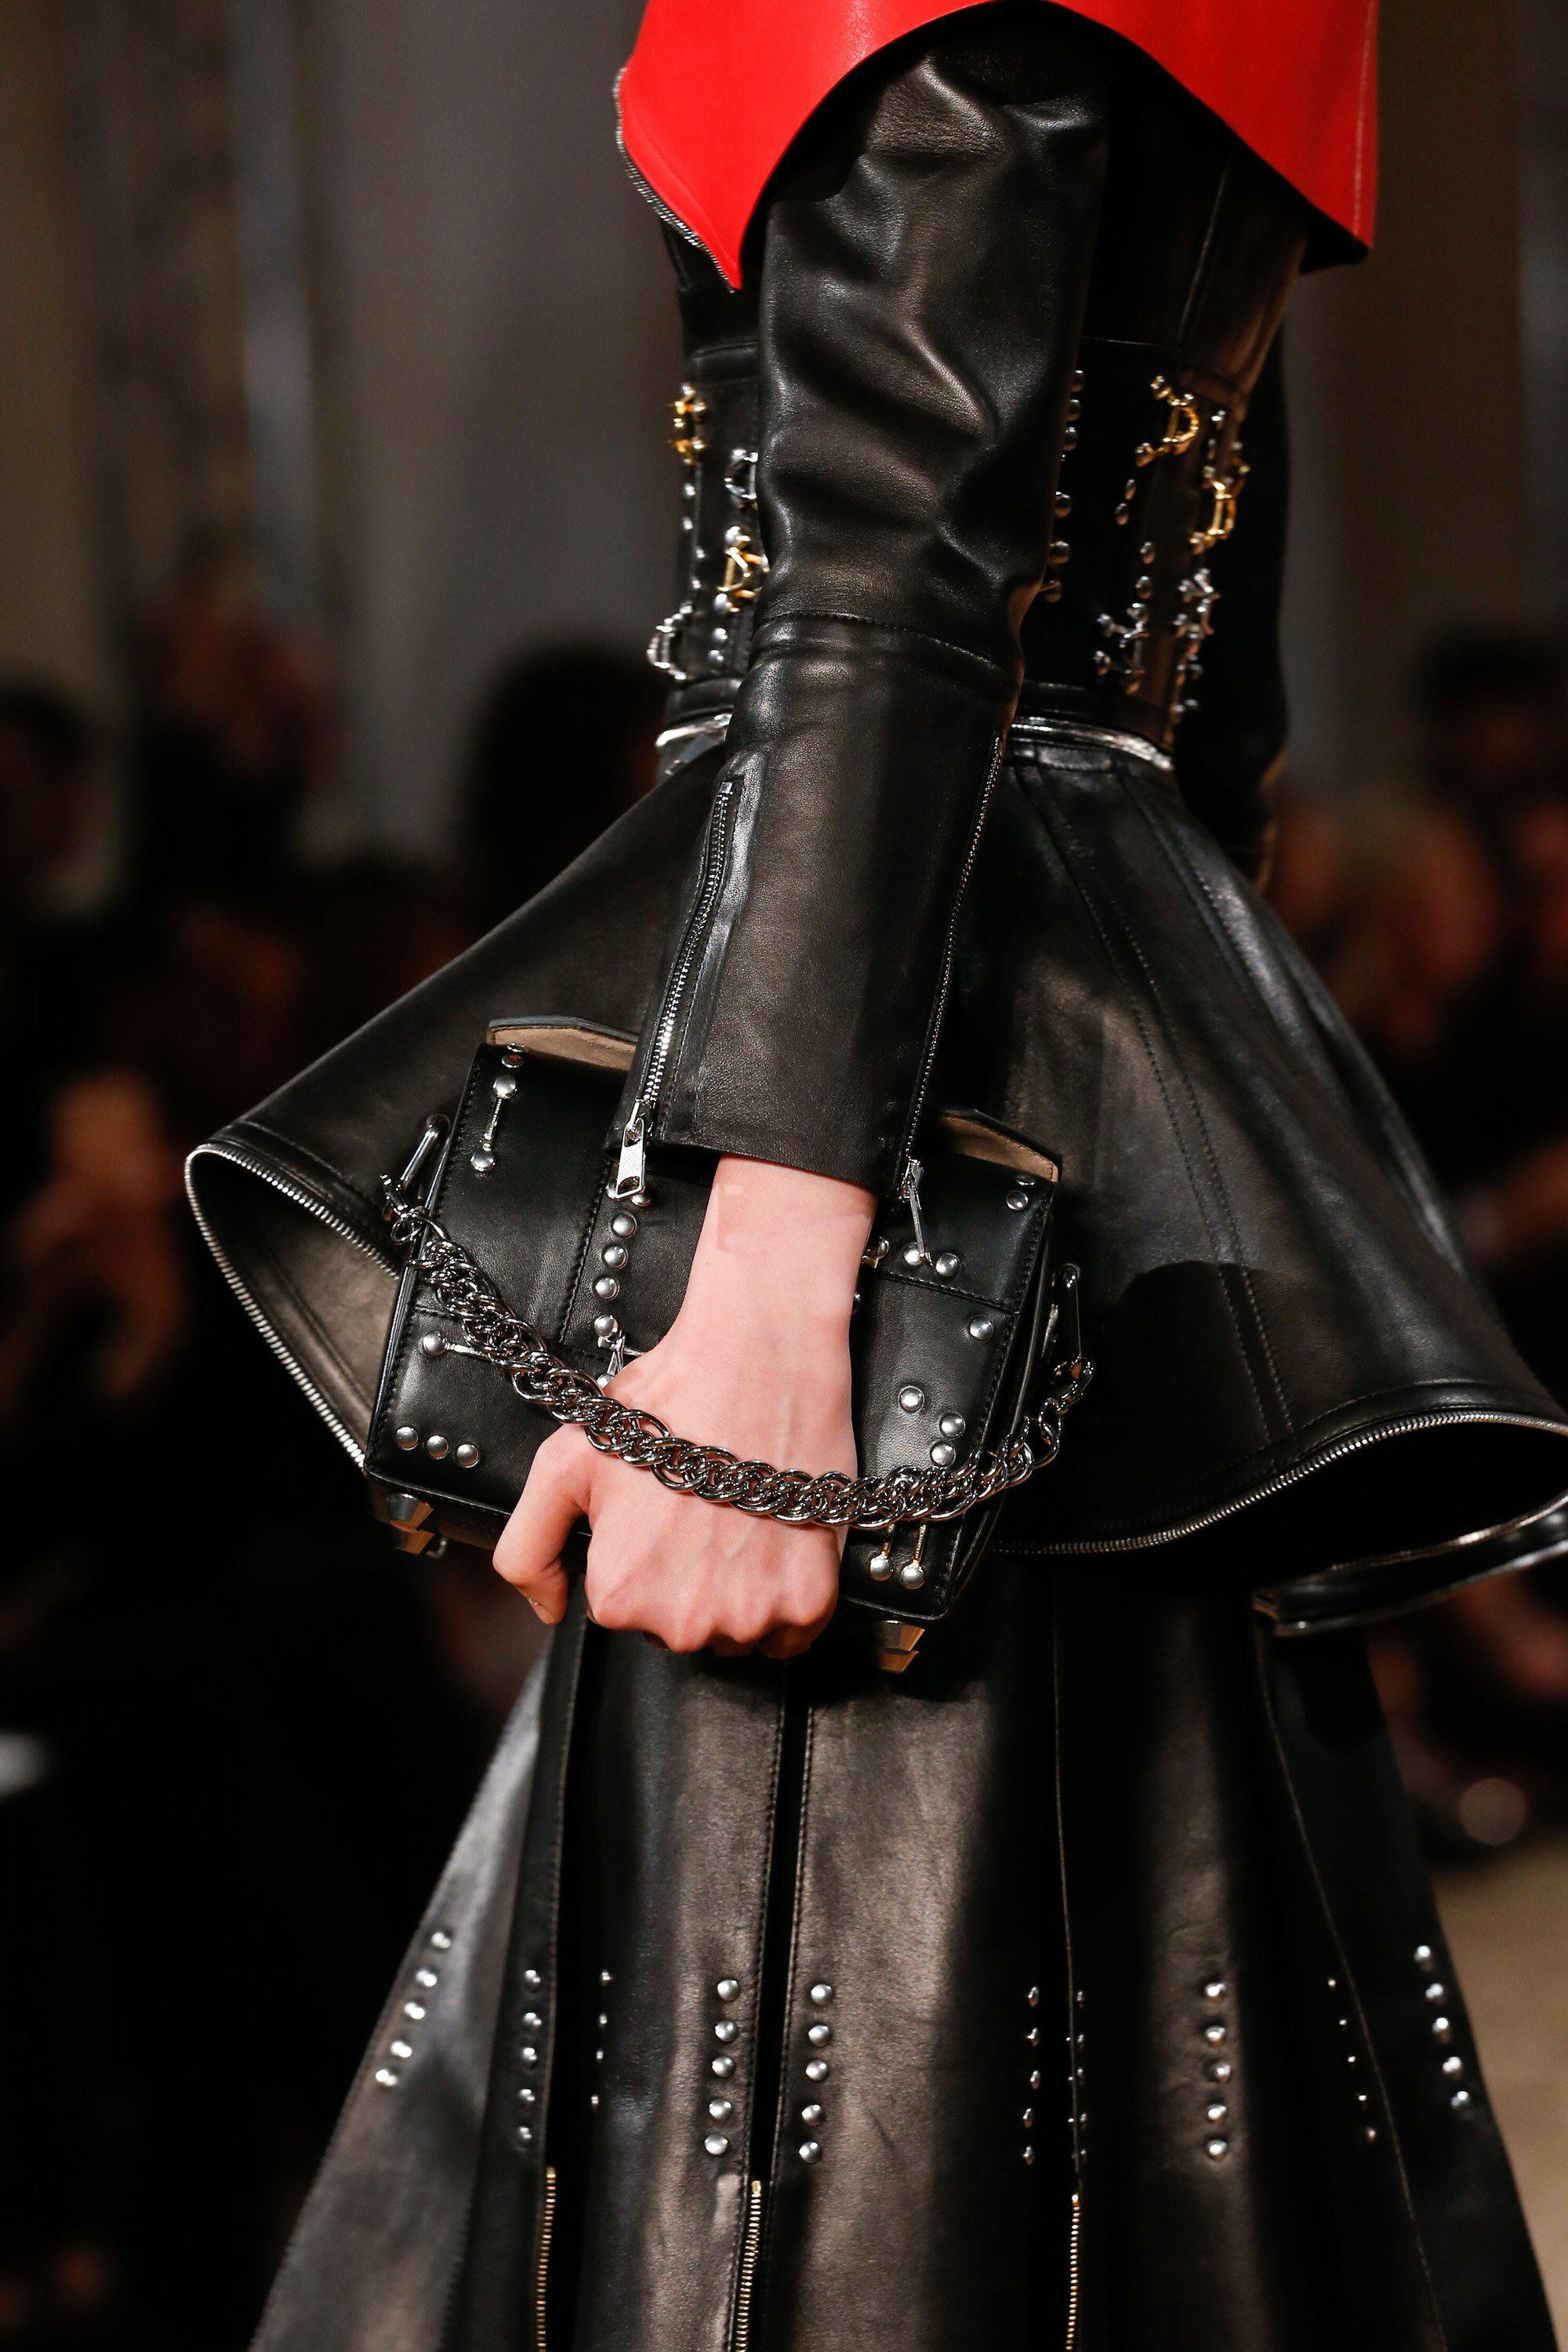 Alexander McQueen Spring 2018 - Summer Fashion Trends 2018 - image via vogue - purse trends 2018 - leather purses - alexander mcqueen bags 2018